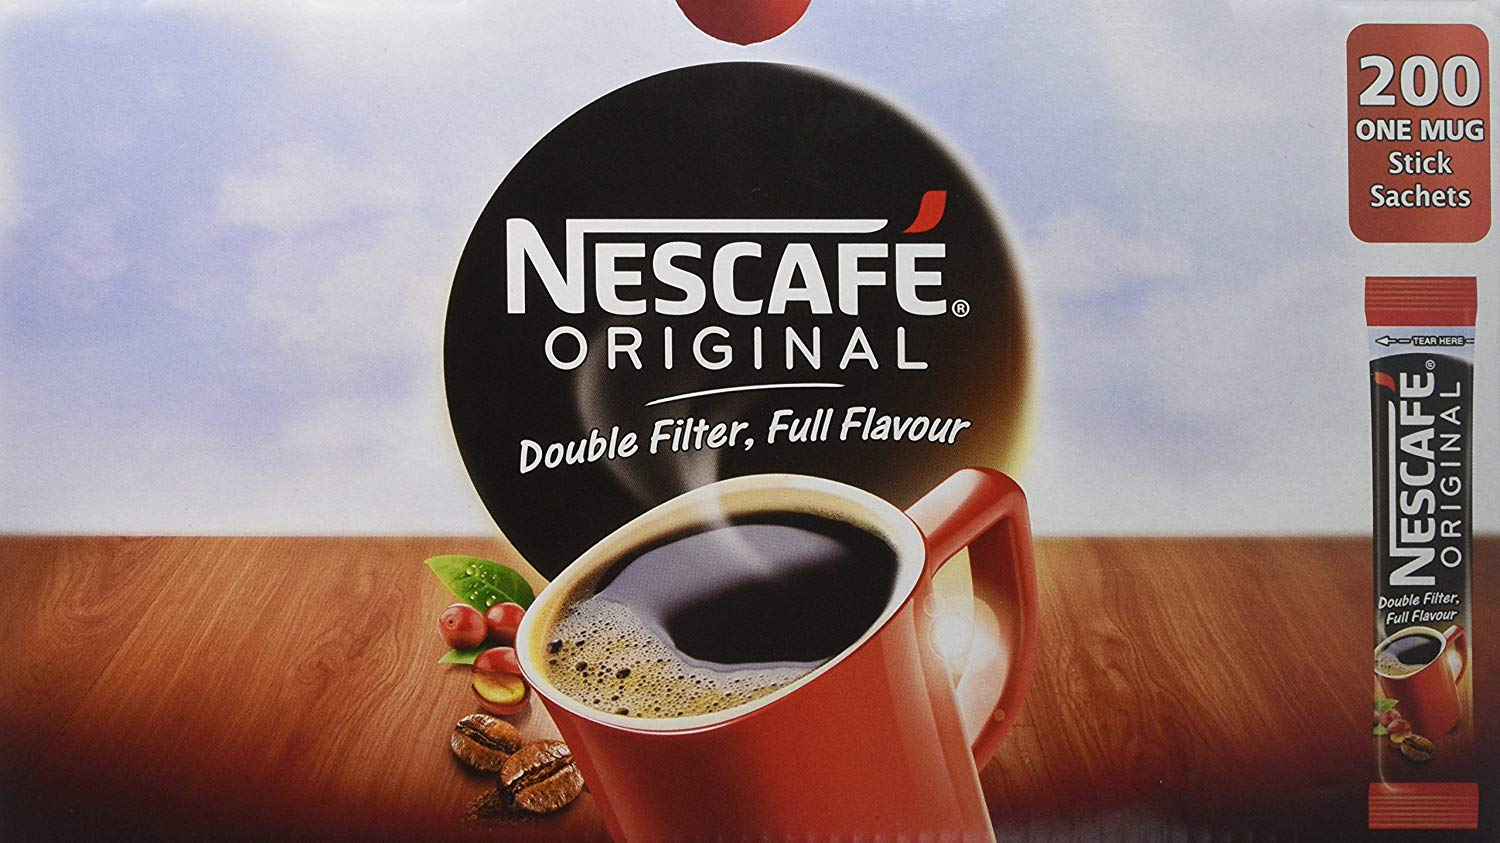 Nescafe Original Stick PK200